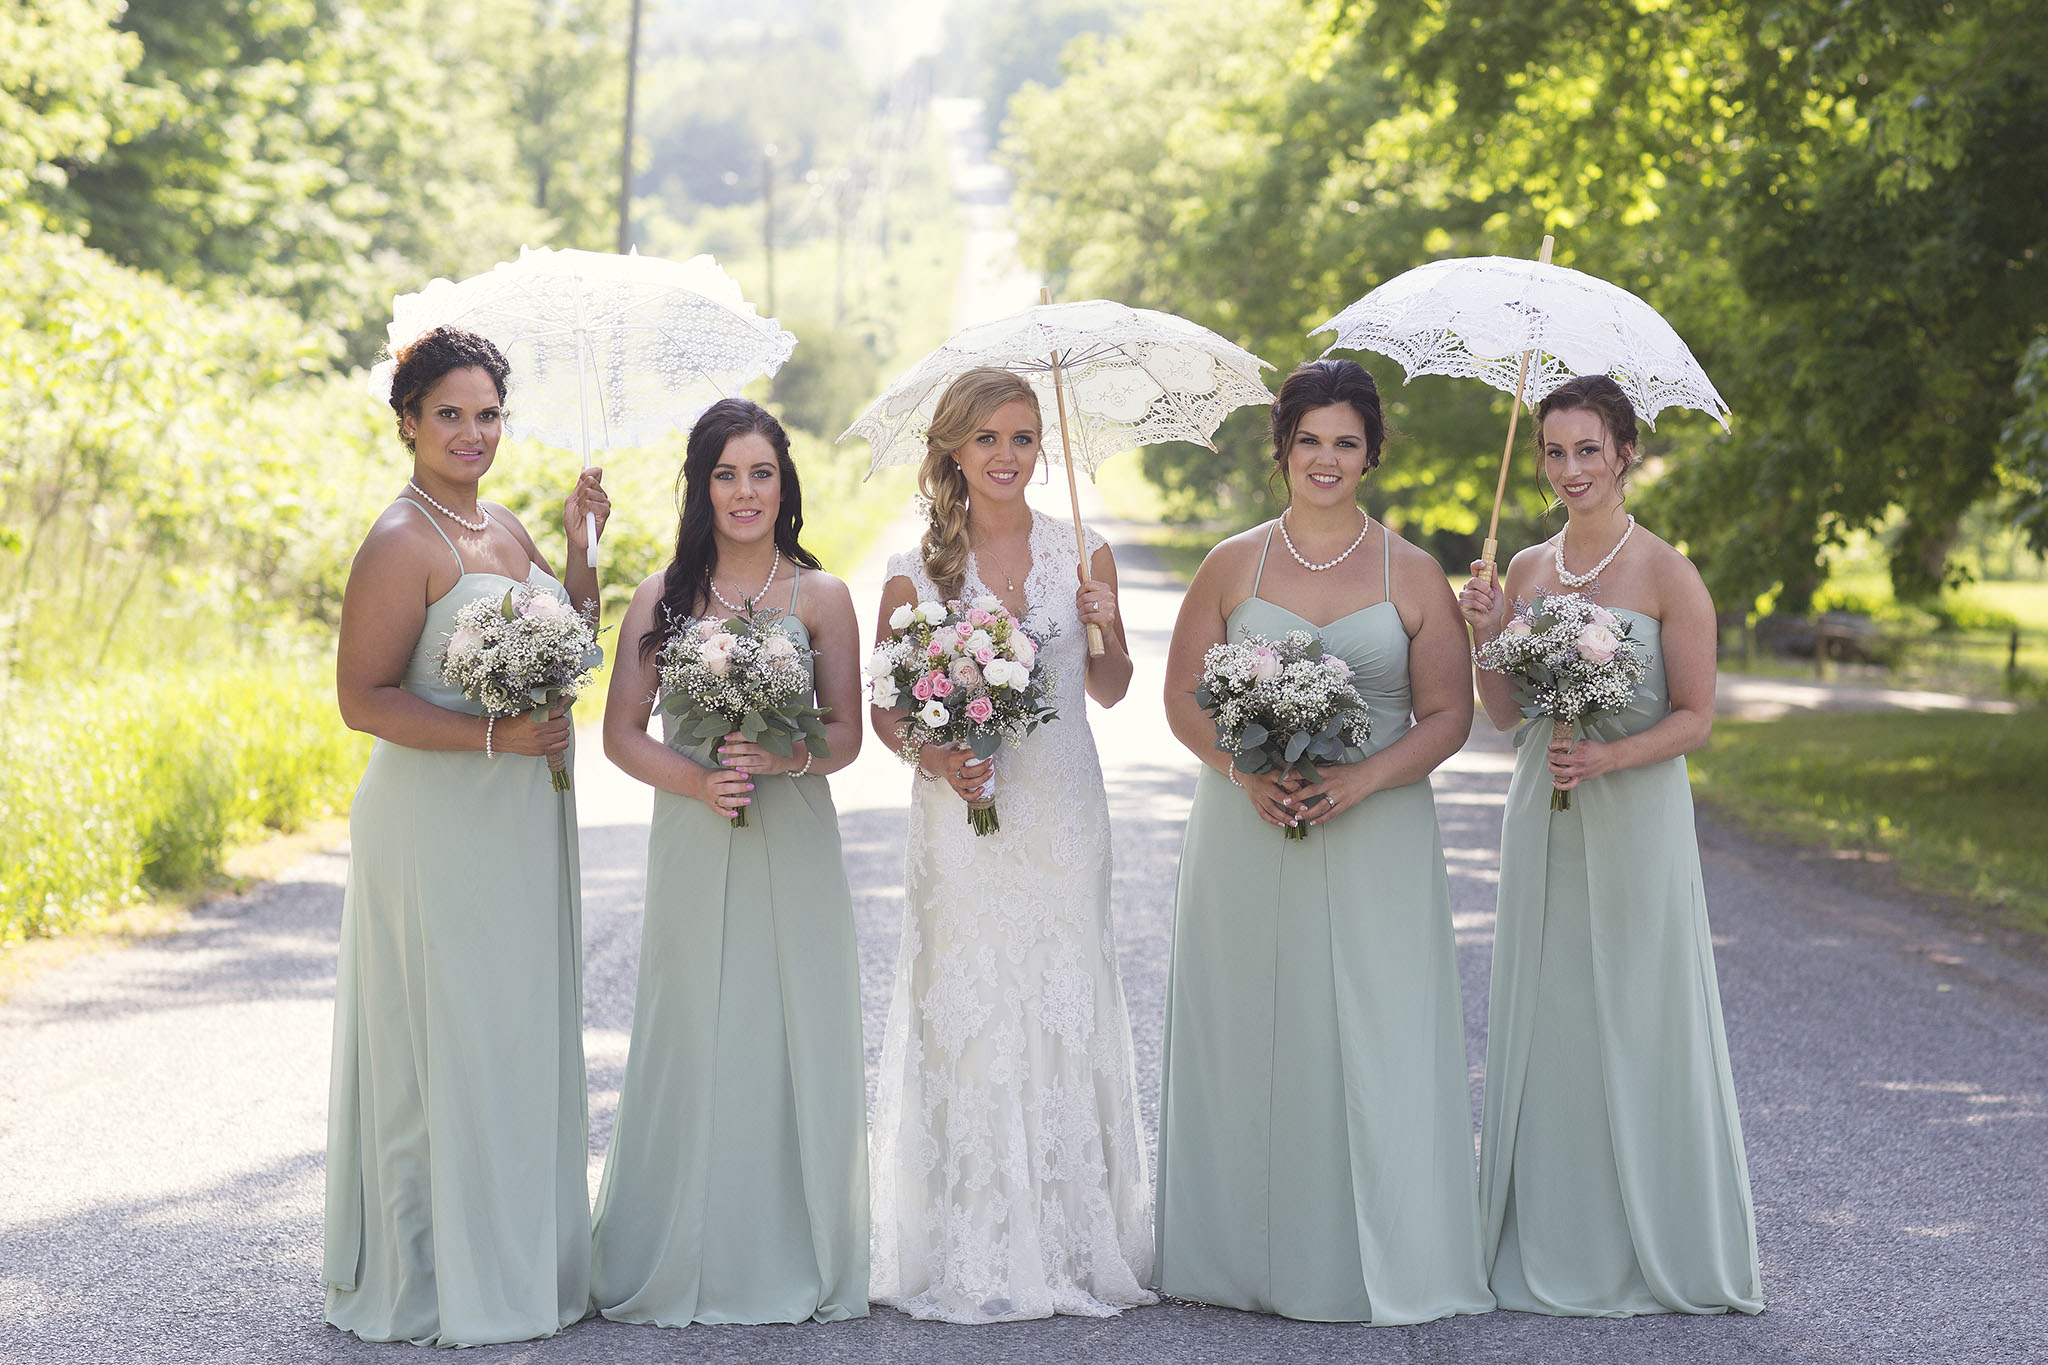 Formal sun umbrella bridal party picture.